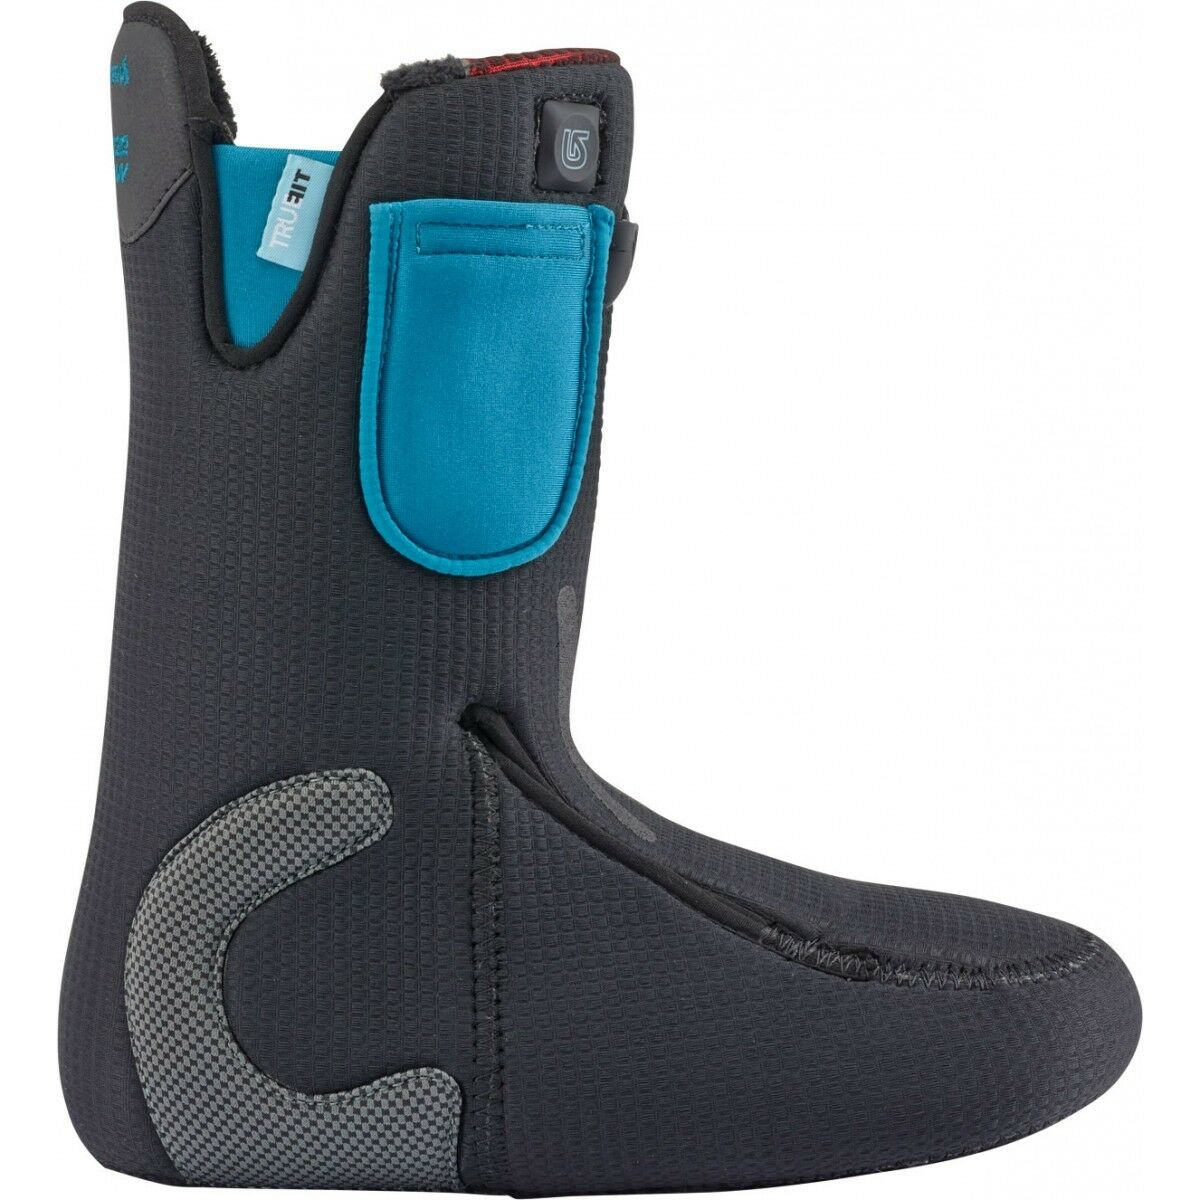 BURTON TOASTER HEATED SNOWBOARD BOOT  LINERS WOMEN'S SIZES  BRAND NEW